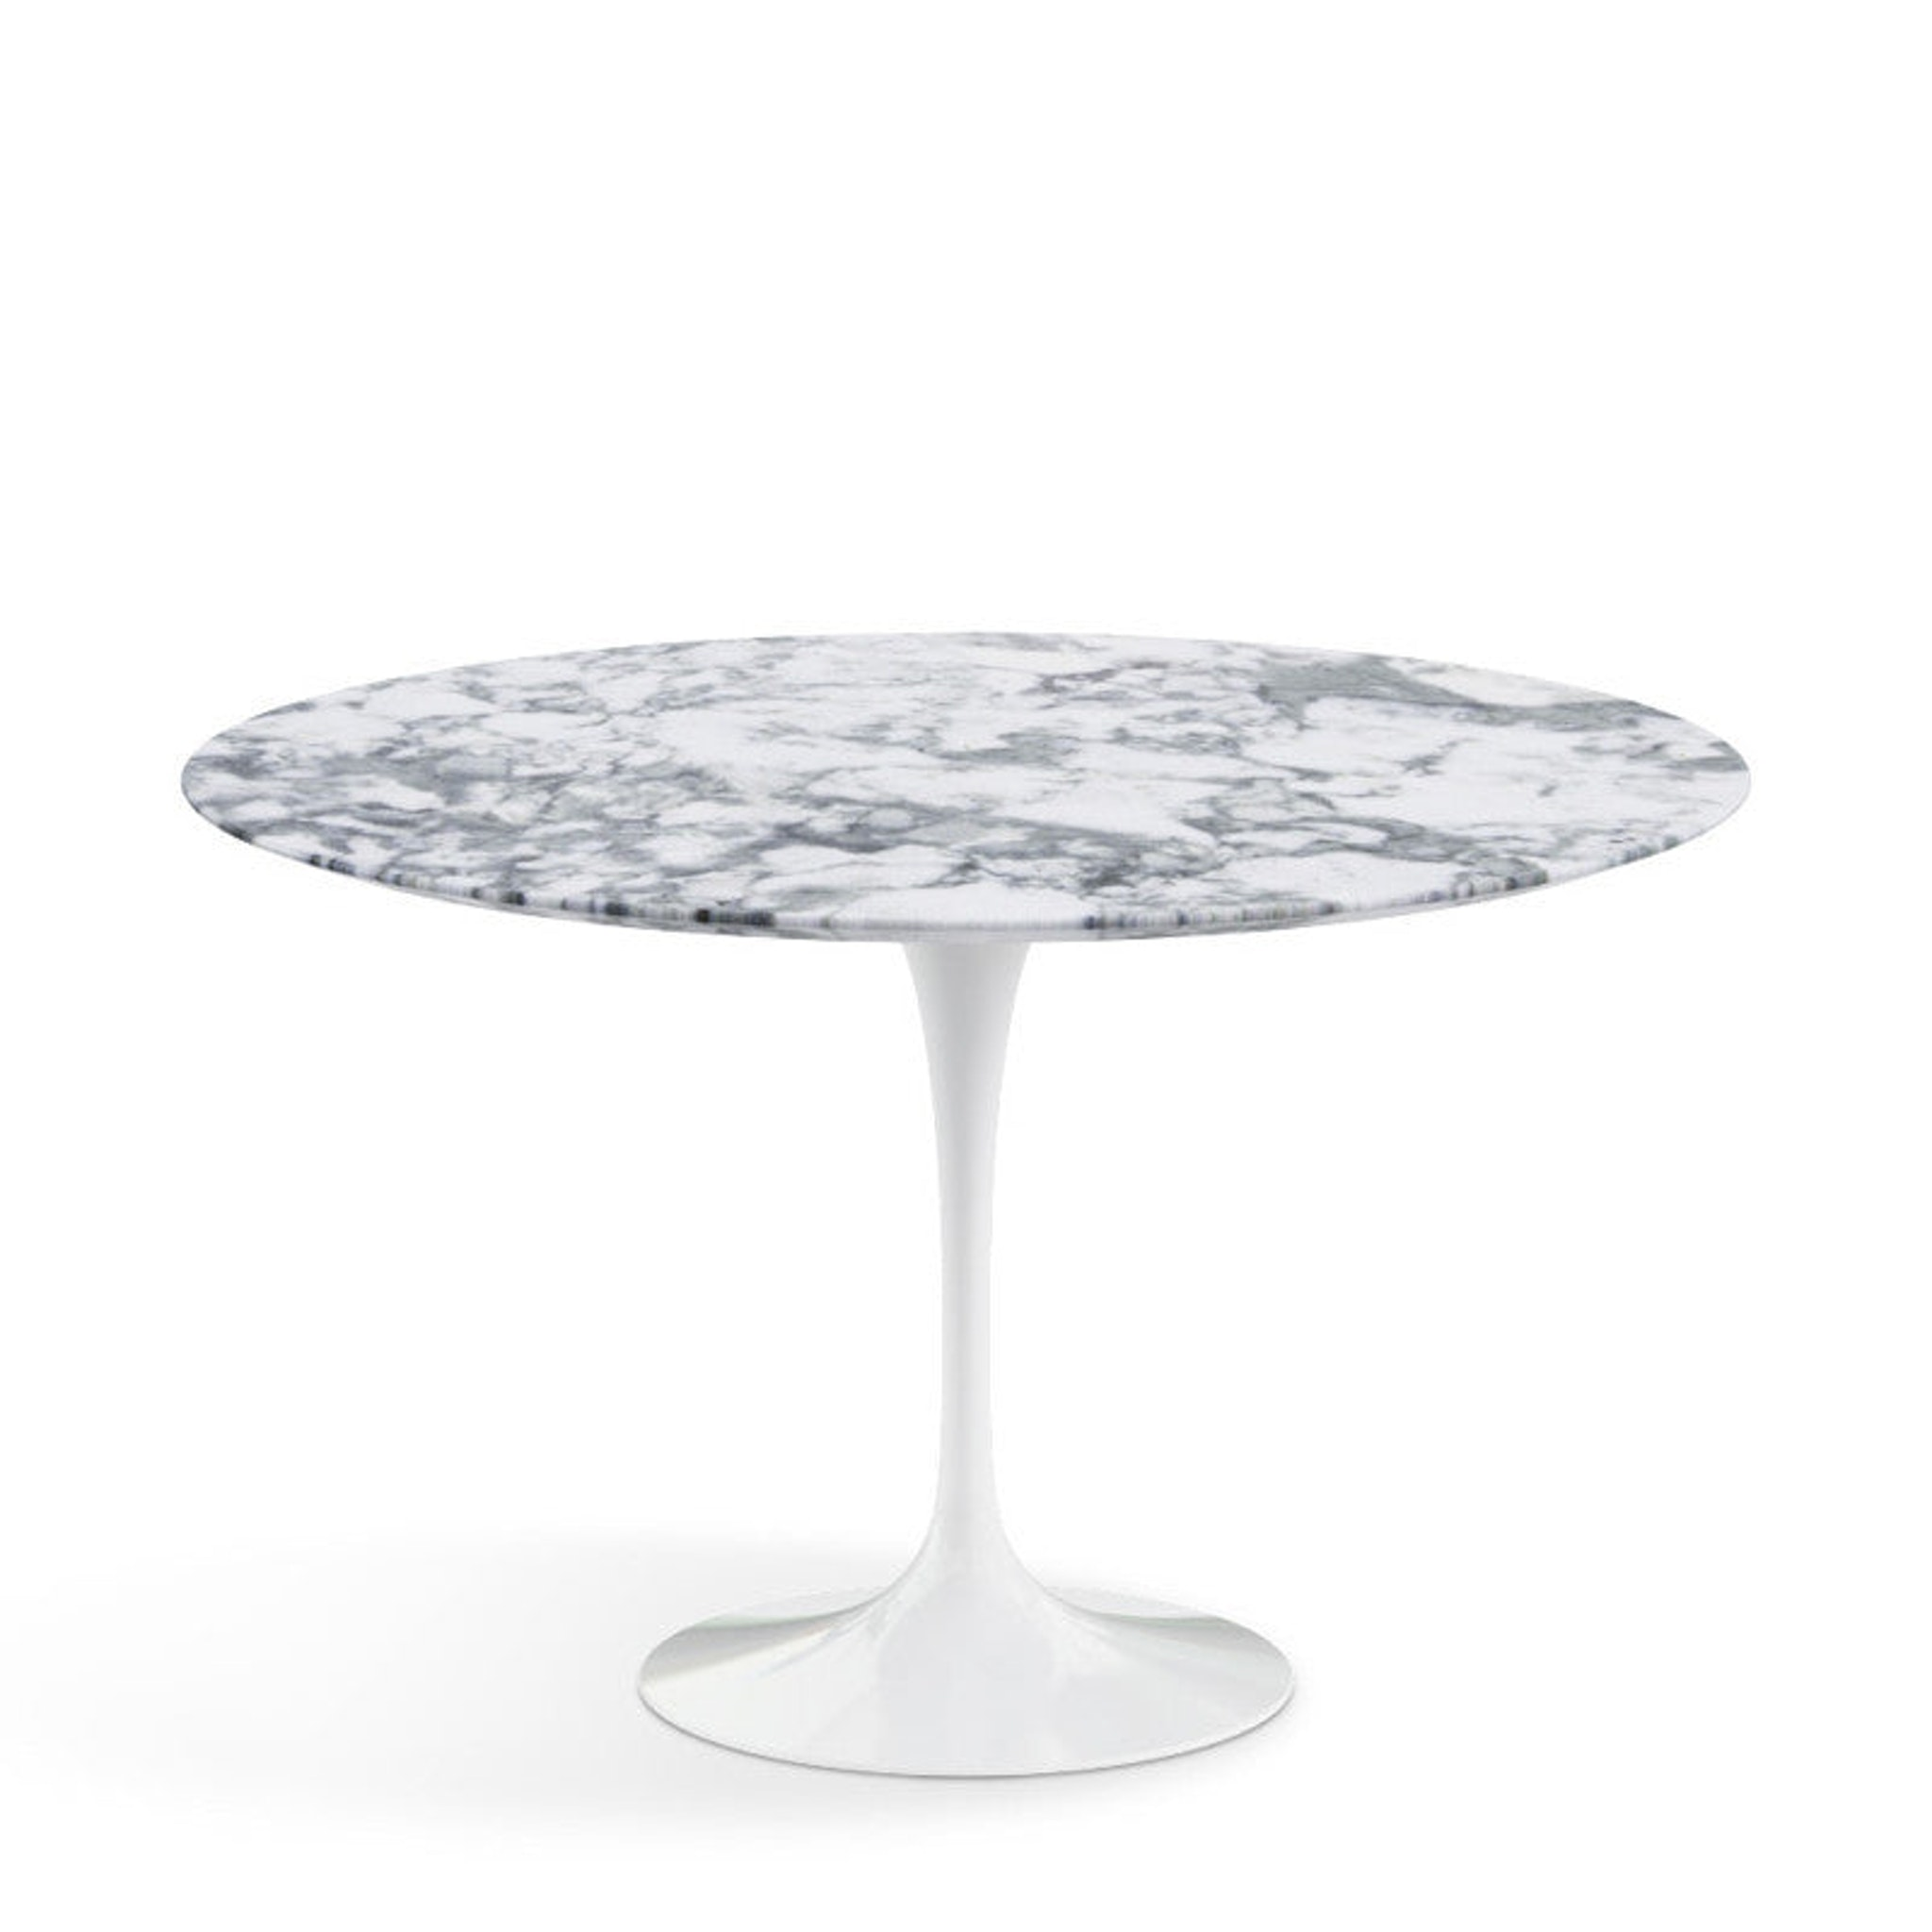 Saarinen low oval coffee table images saarinen oval dining table saarinen oval dining table design within reach images geotapseo Choice Image